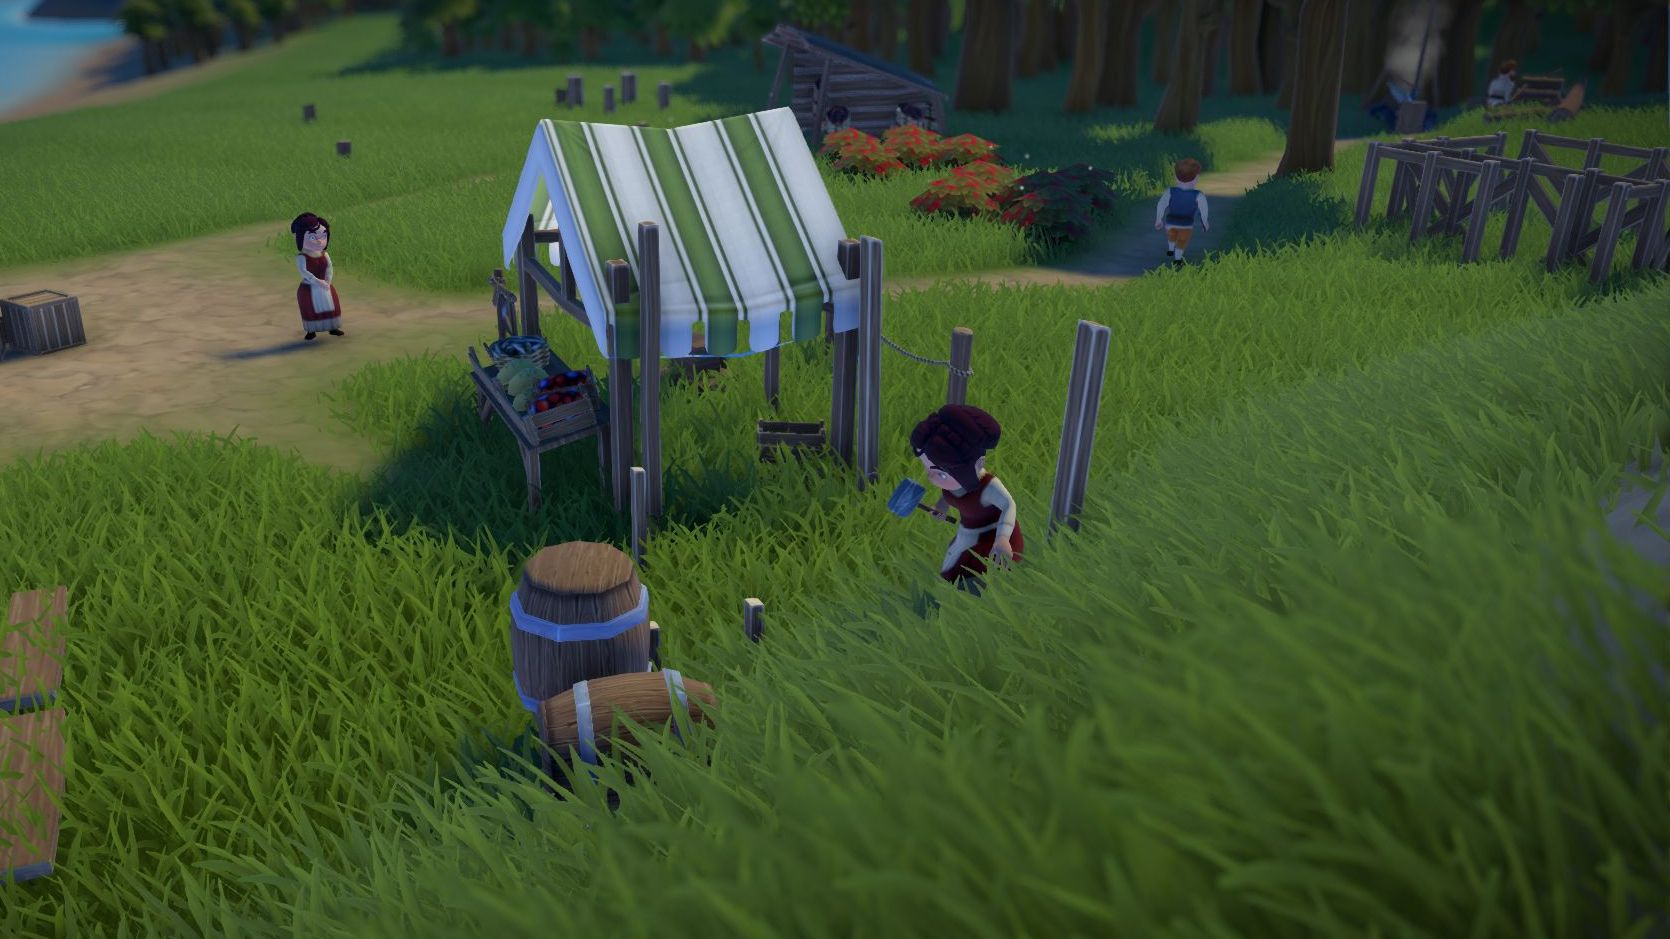 Foundation Polymorph Games rps-o-chat: we're in love with medieval city builder